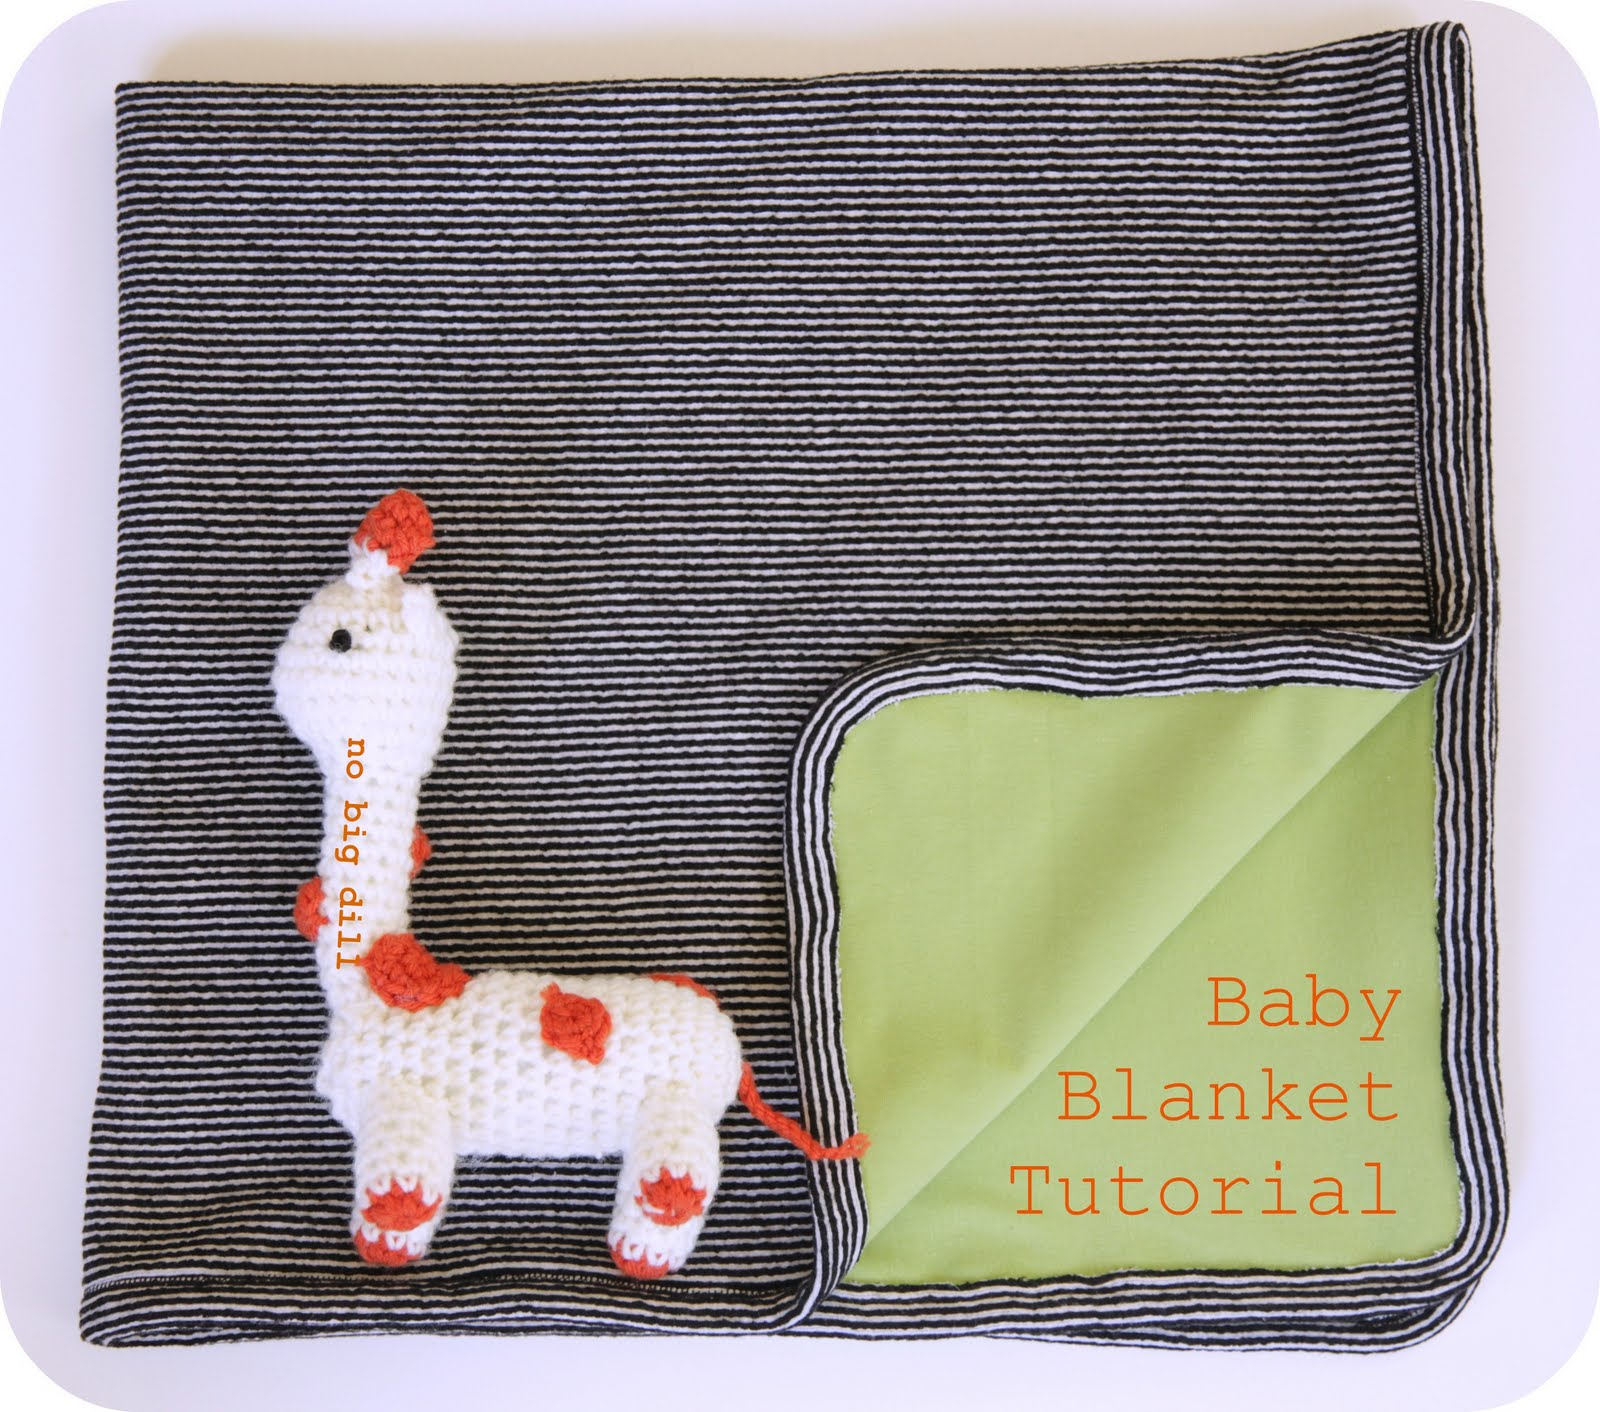 No Big Dill Spark Blanket Lucy